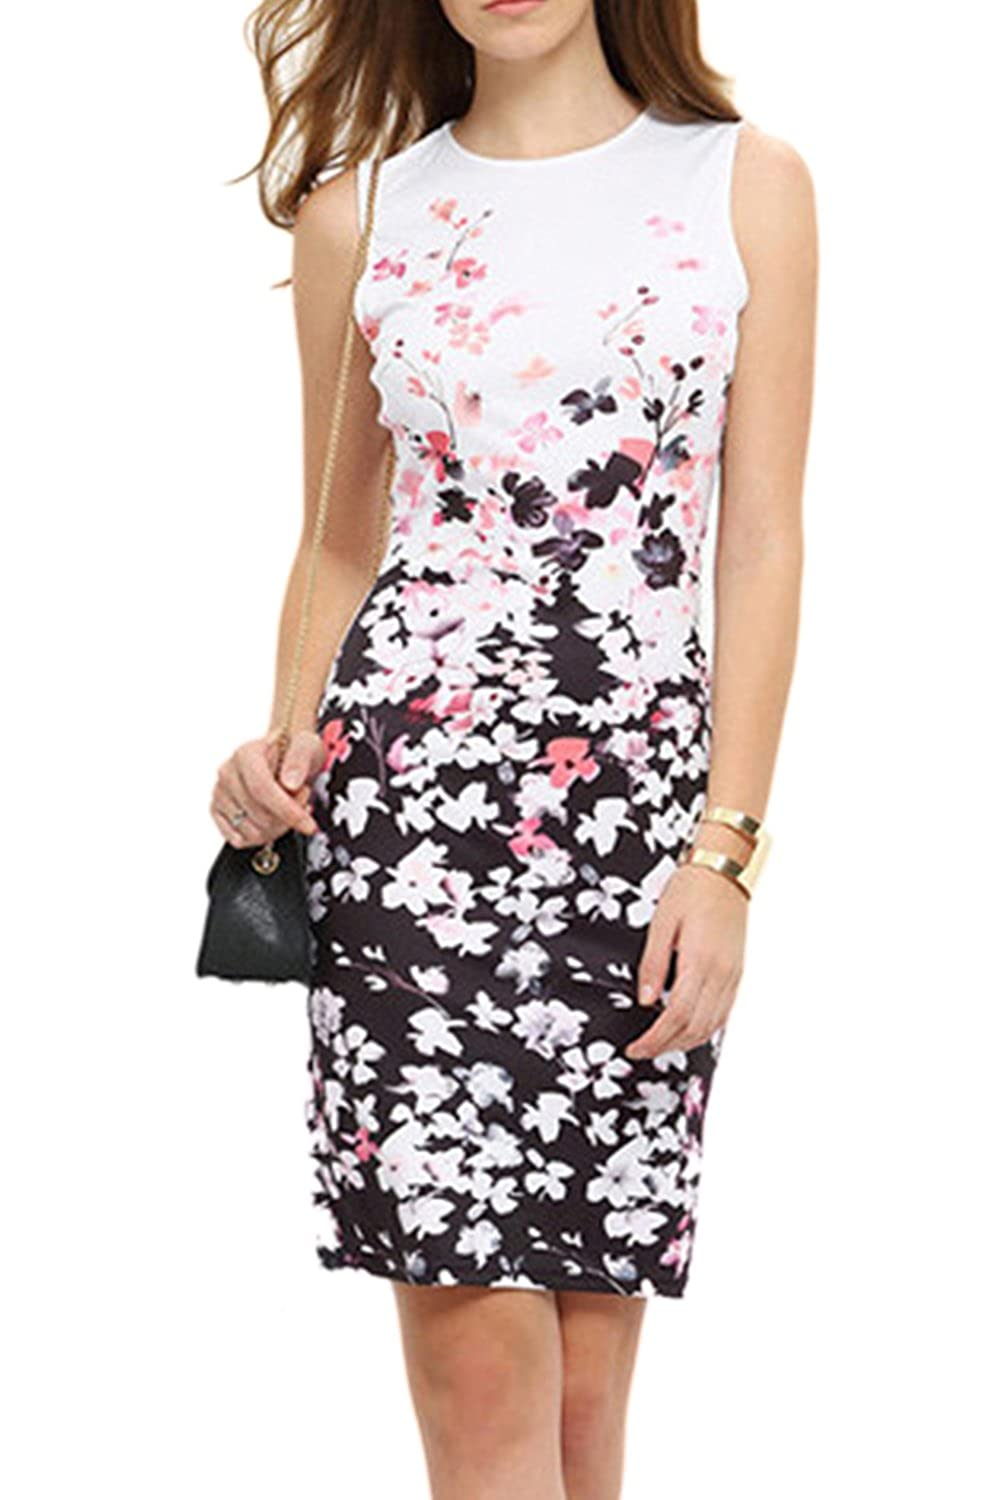 Yacun Women's Floral Sleeveless Cocktail Party Bodycon Dress CAOny0240